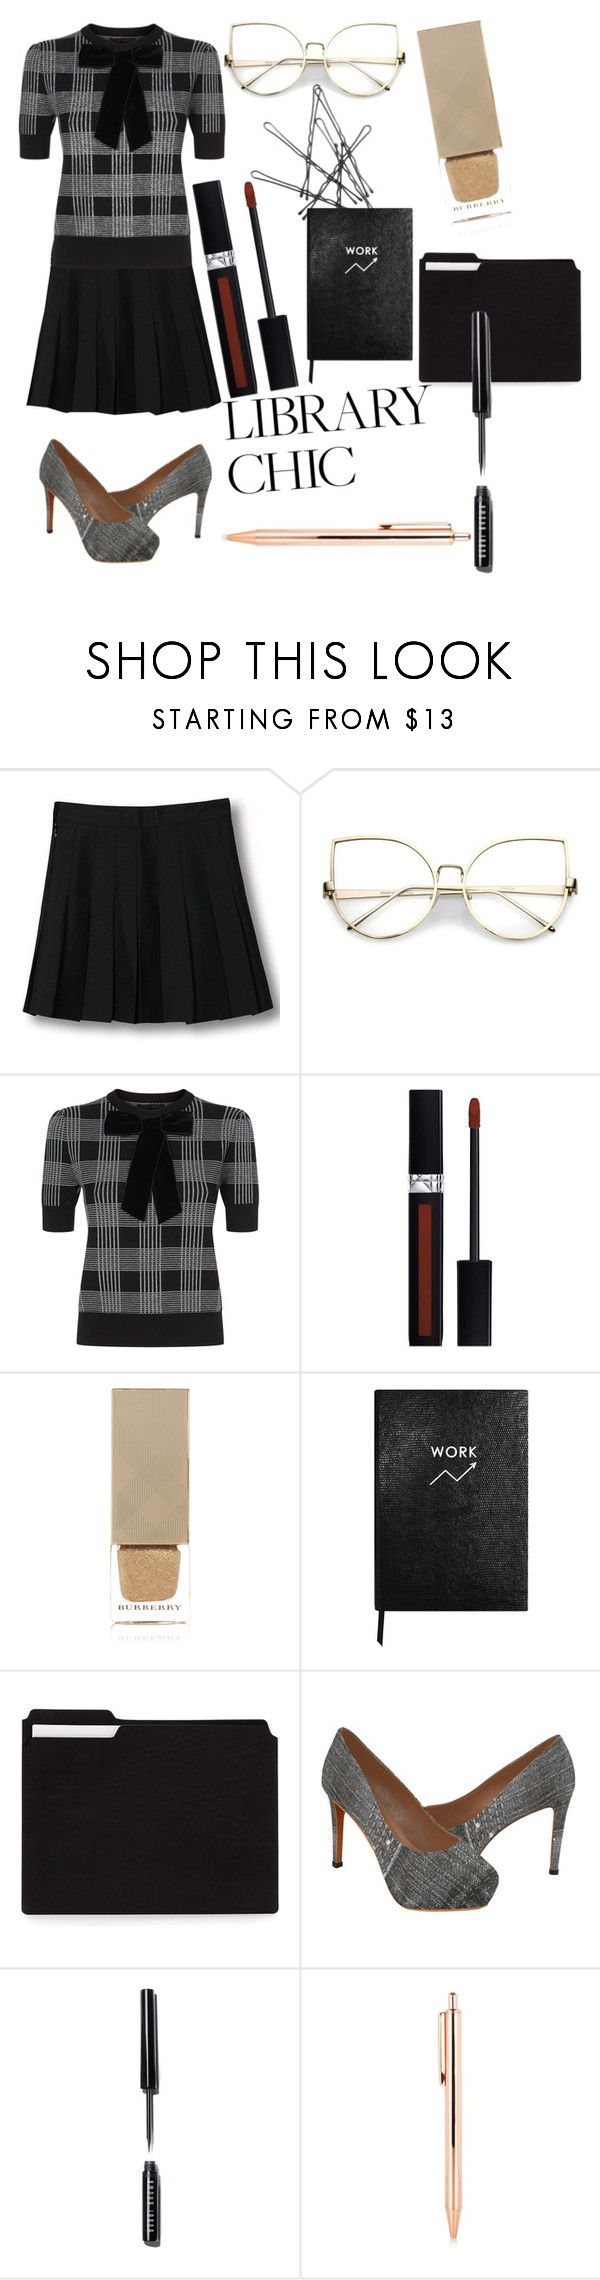 """""""Library Chic!"""" by does-she-talk ❤ liked on Polyvore featuring WithChic, Alice + Olivia, Christian Dior, Burberry, Sloane Stationery and Bobbi Brown Cosmetics"""